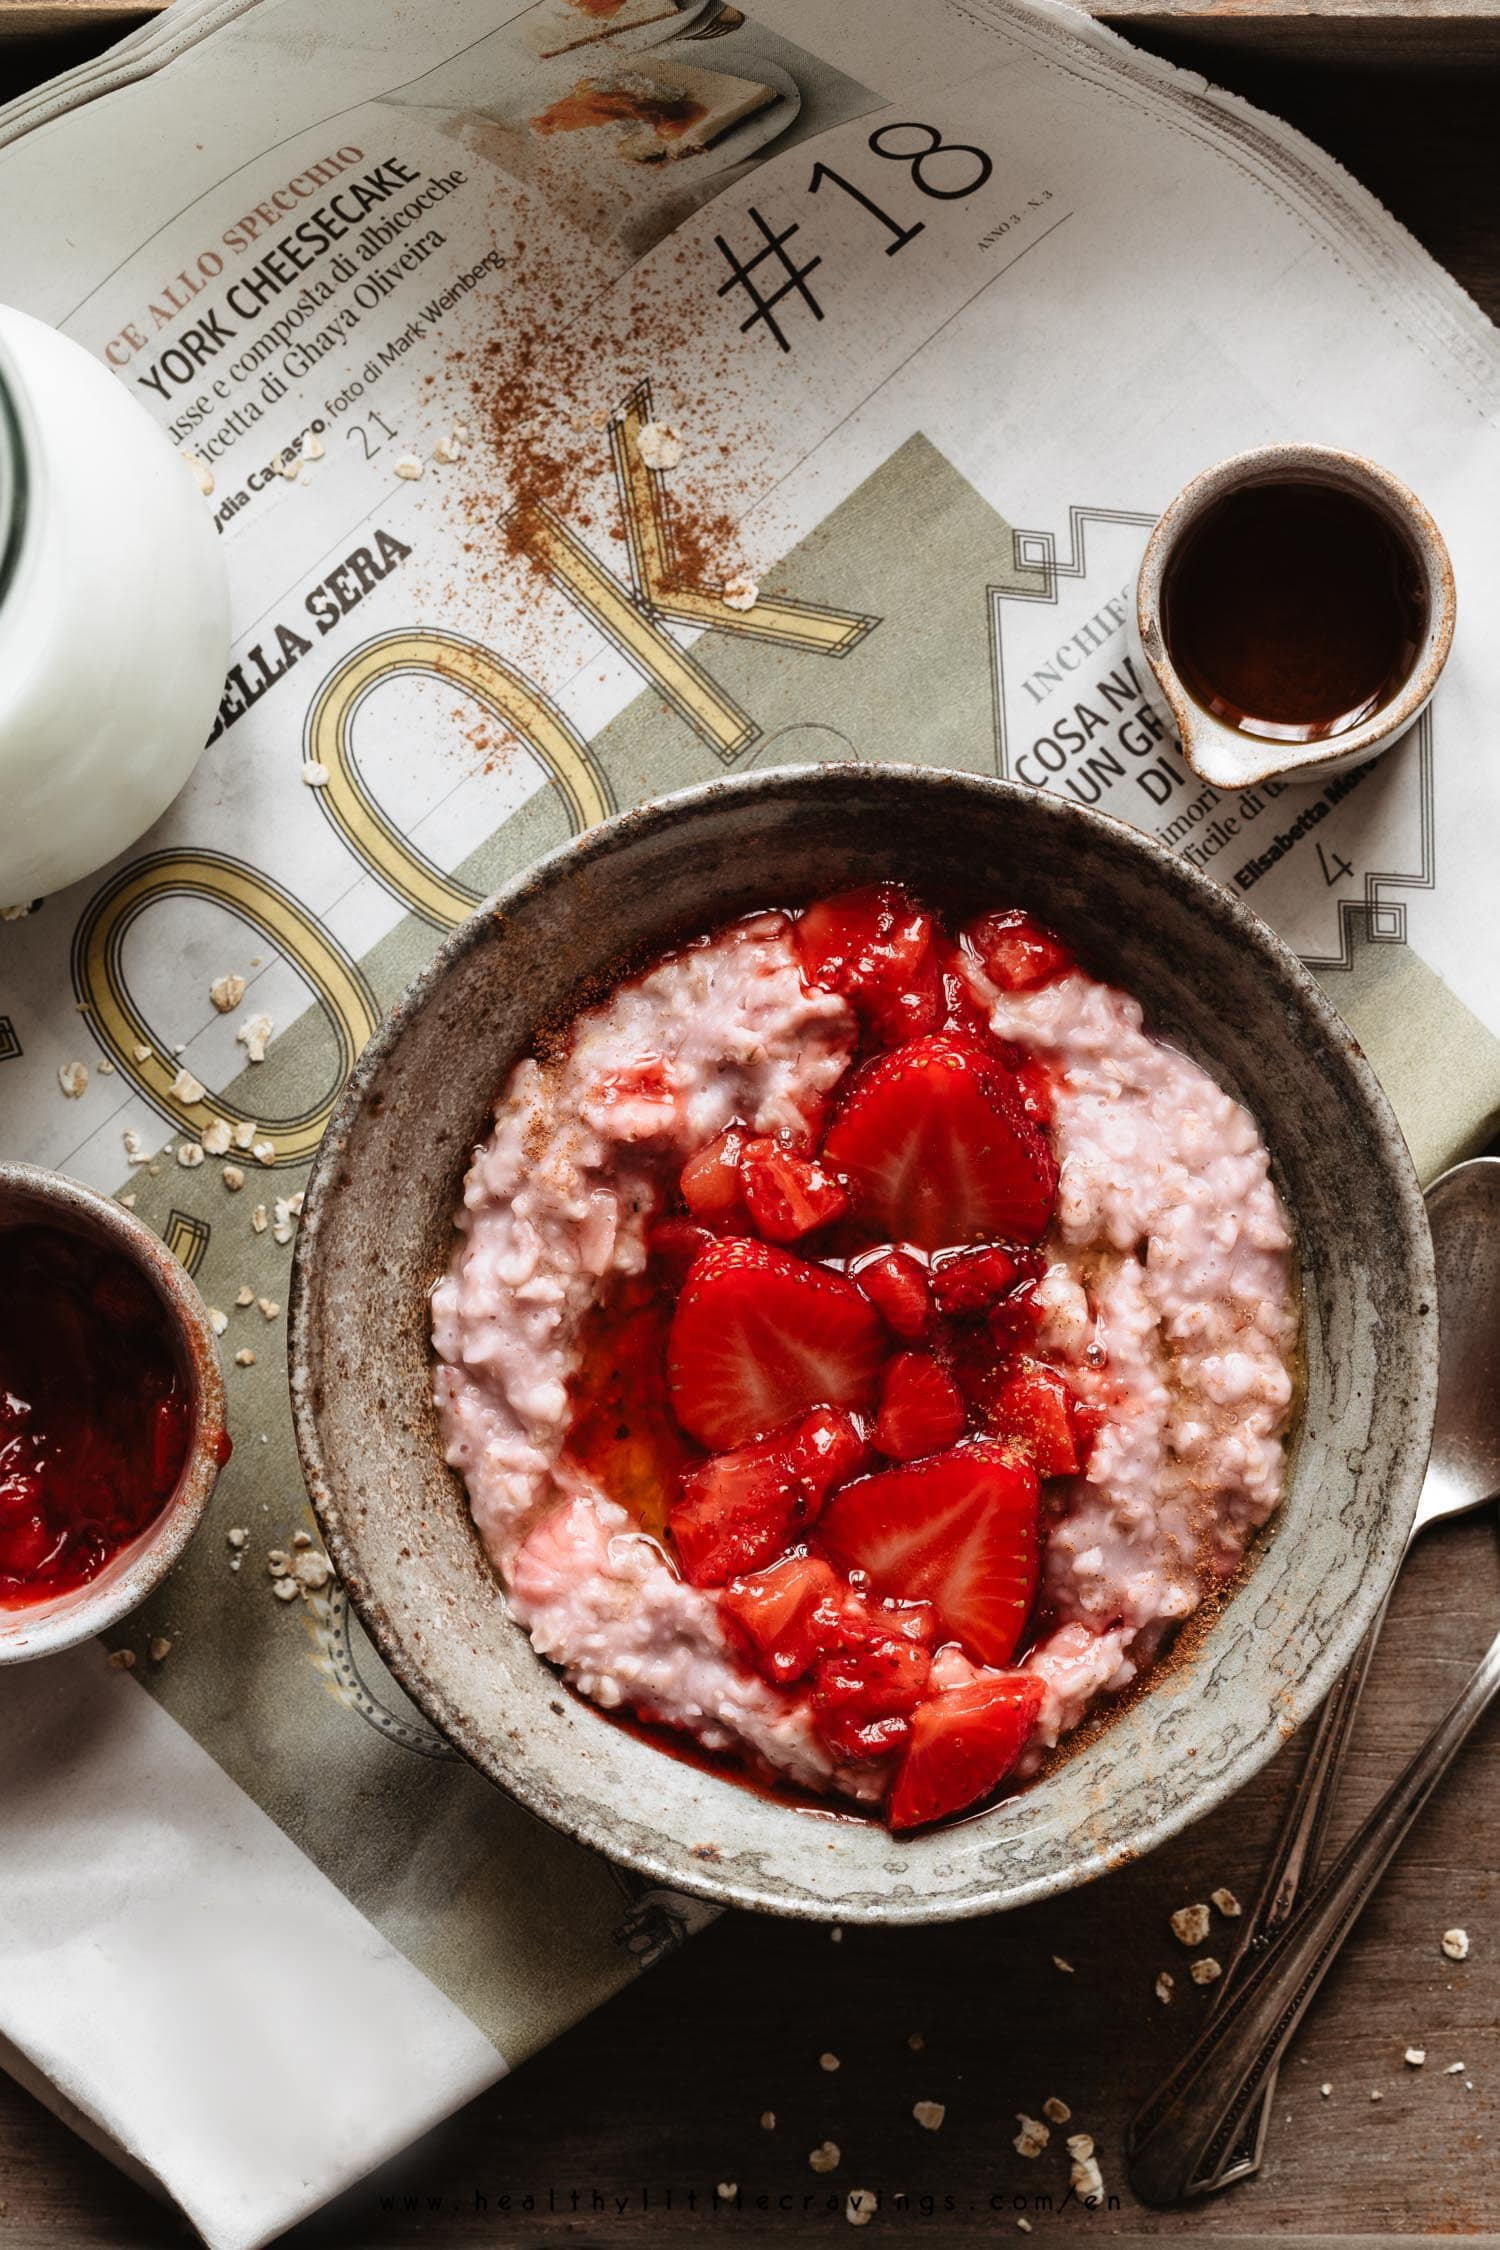 Strawberry oatmeal with maple syrup and a sprinkle of cinnamon into a bowl